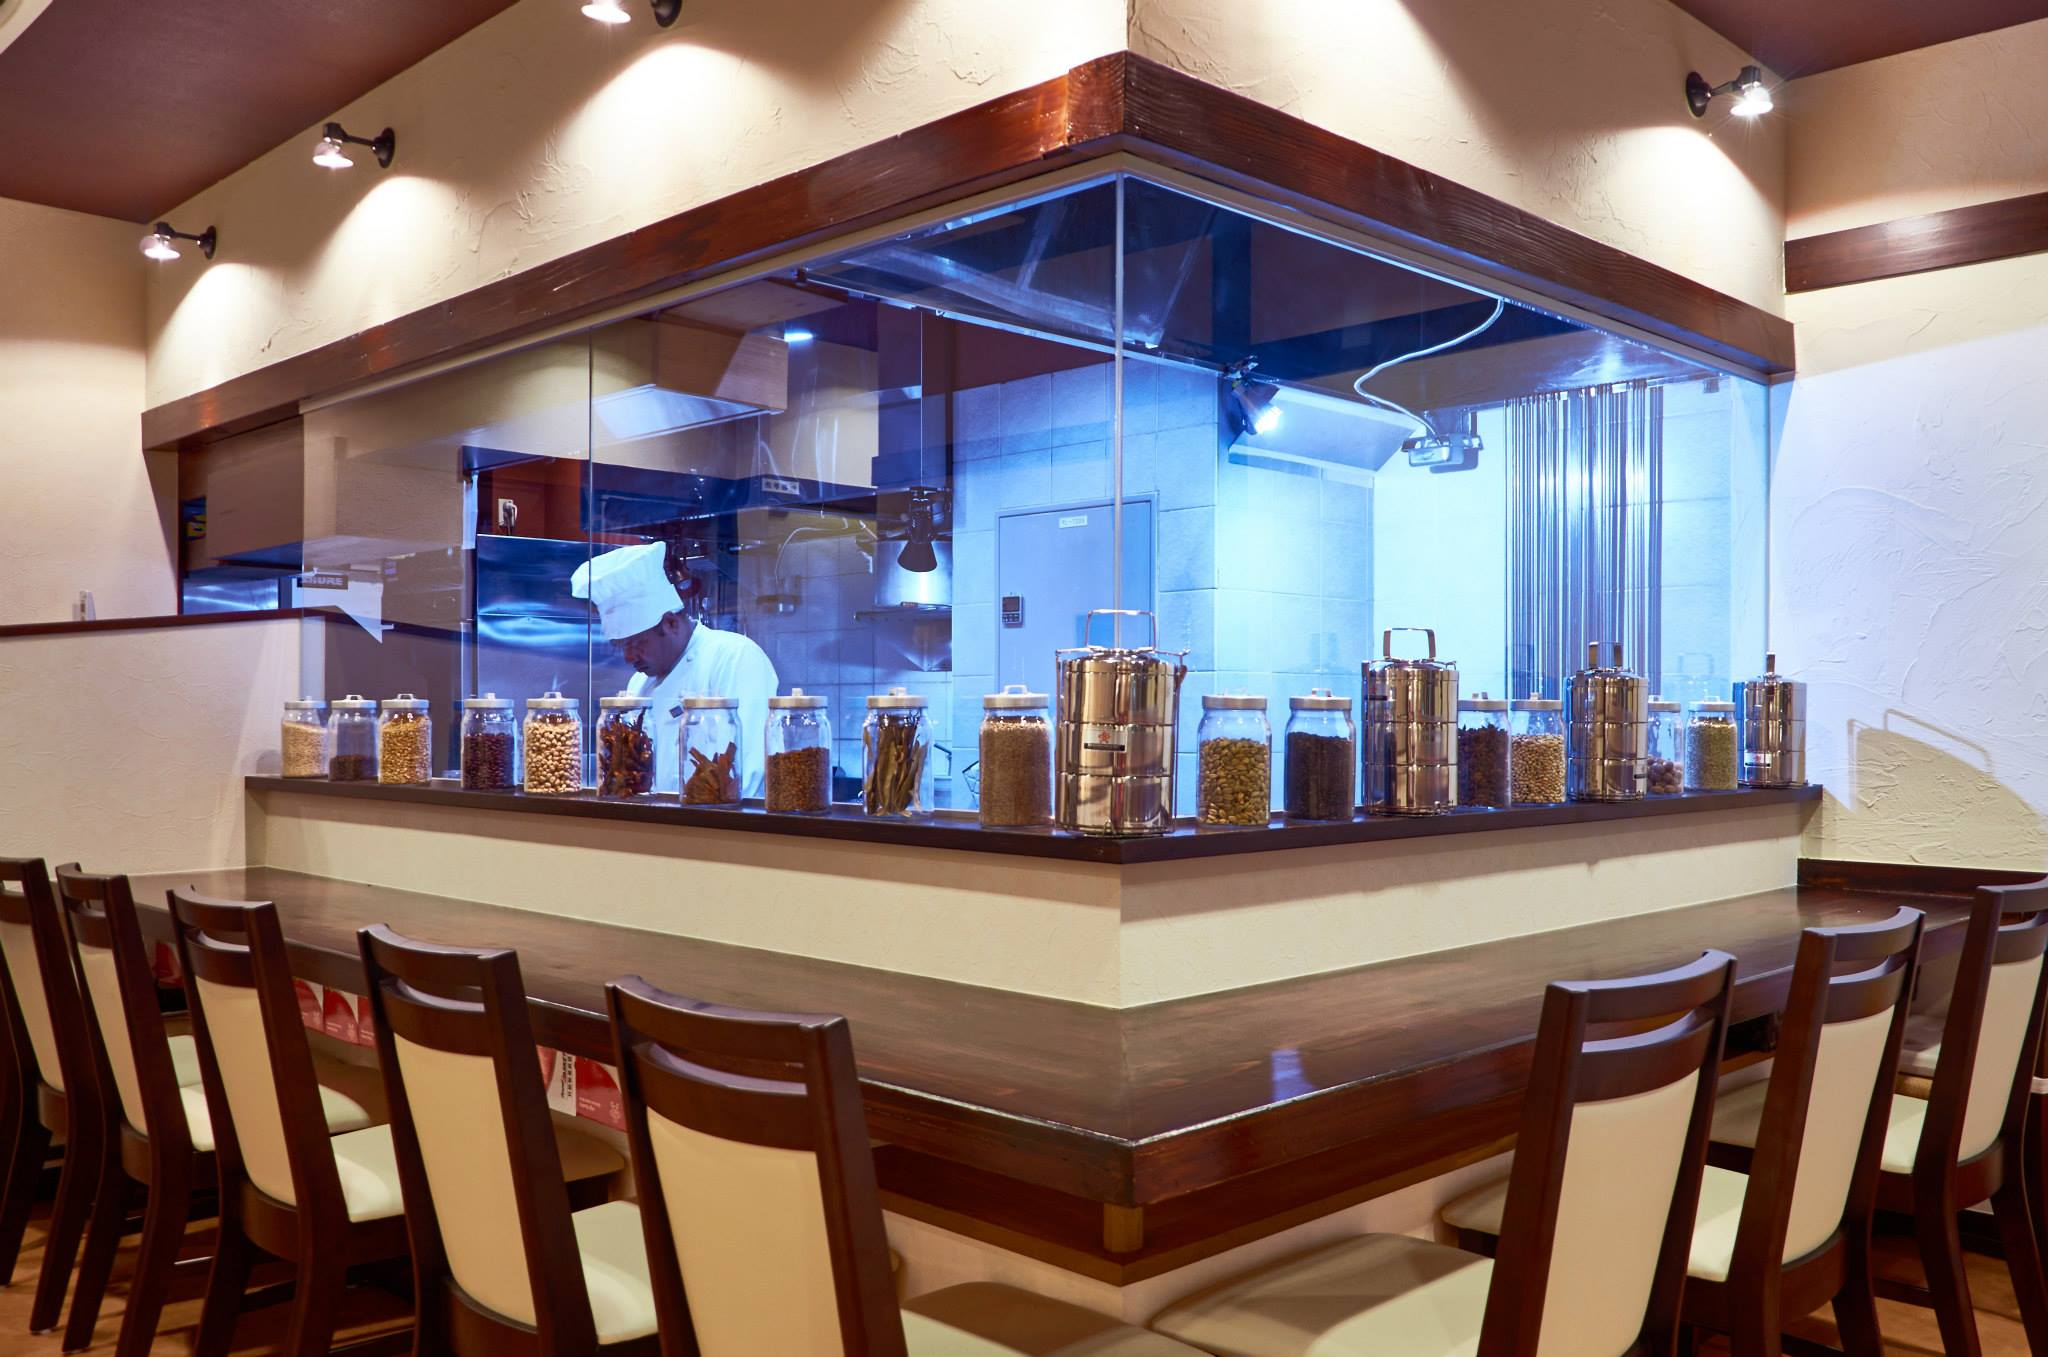 Ruchira Open Kitchen